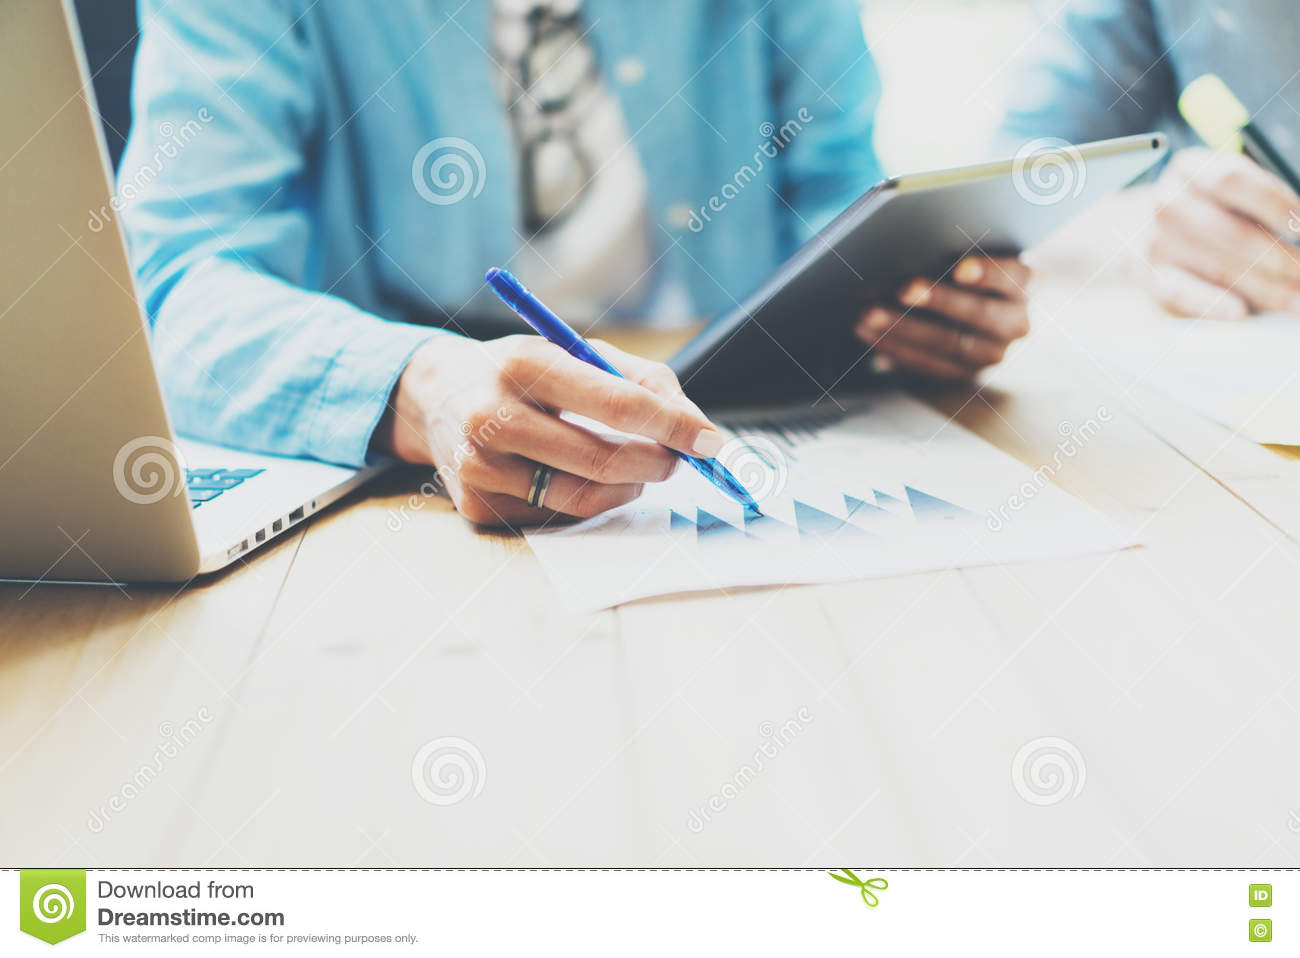 Photo Sales Manager Working Modern Office.Woman Use Generic Design Tablet,Holding Pencil Hand.Account Department Work